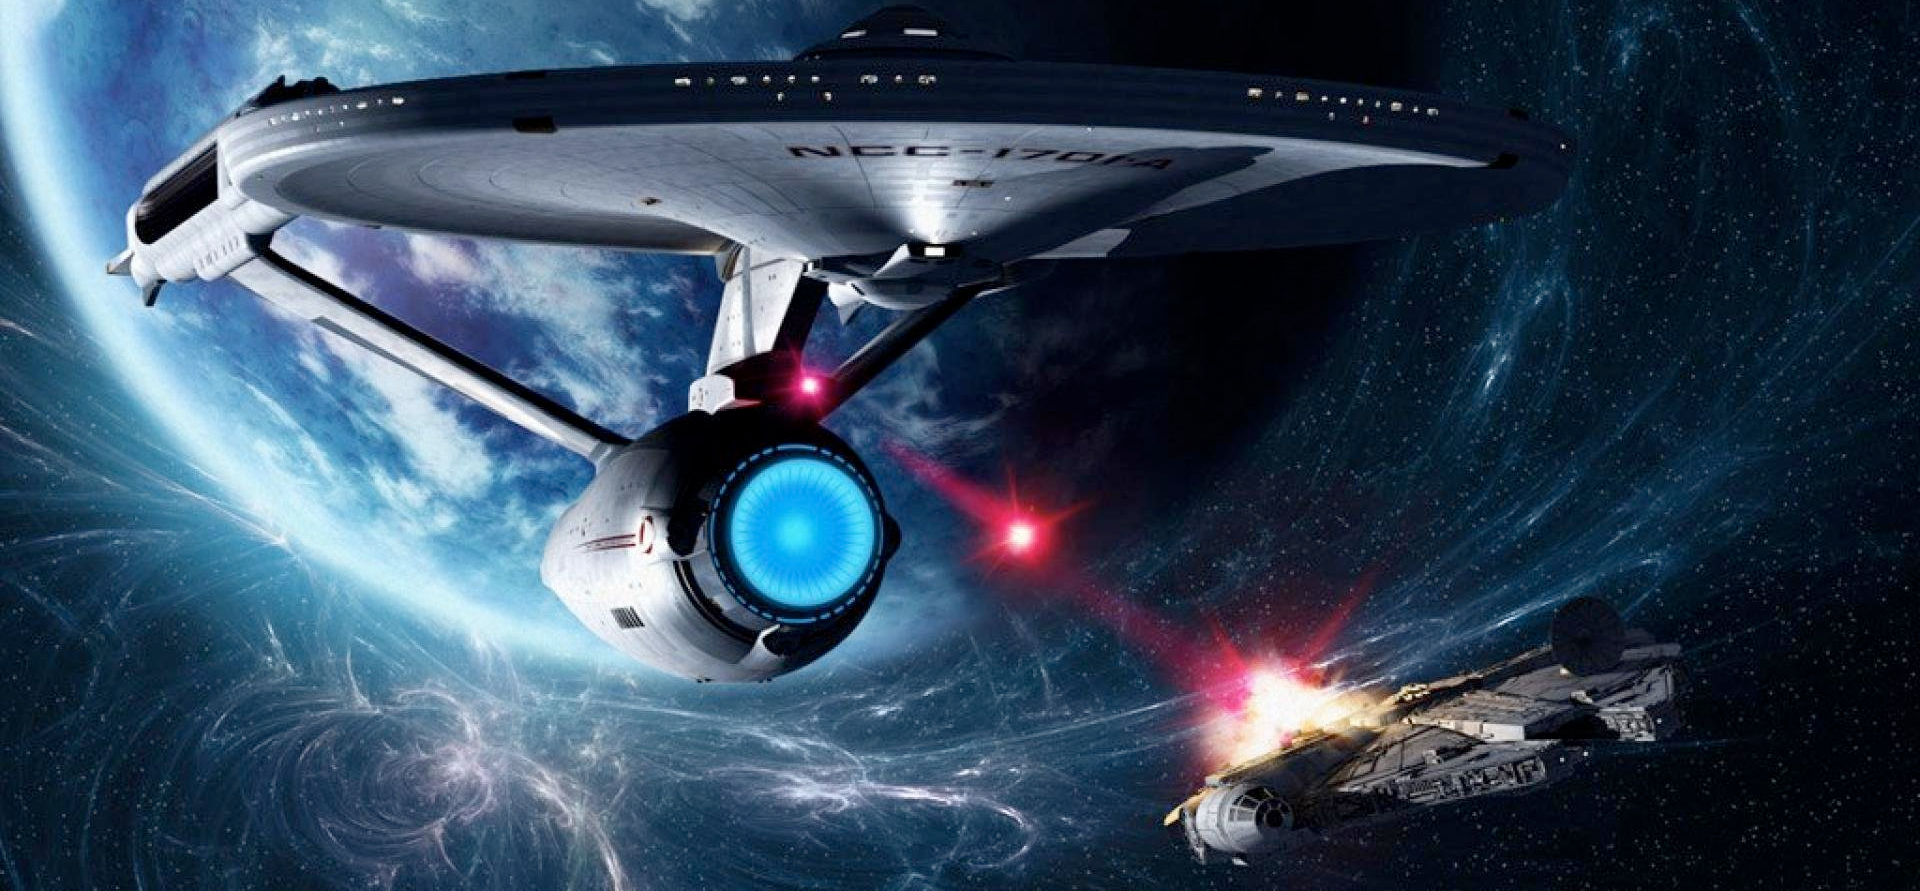 Rumor: Universal Studios Might Be Planning a Star Trek Land to Compete Against Disney World's Star Wars: Galaxy's Edge